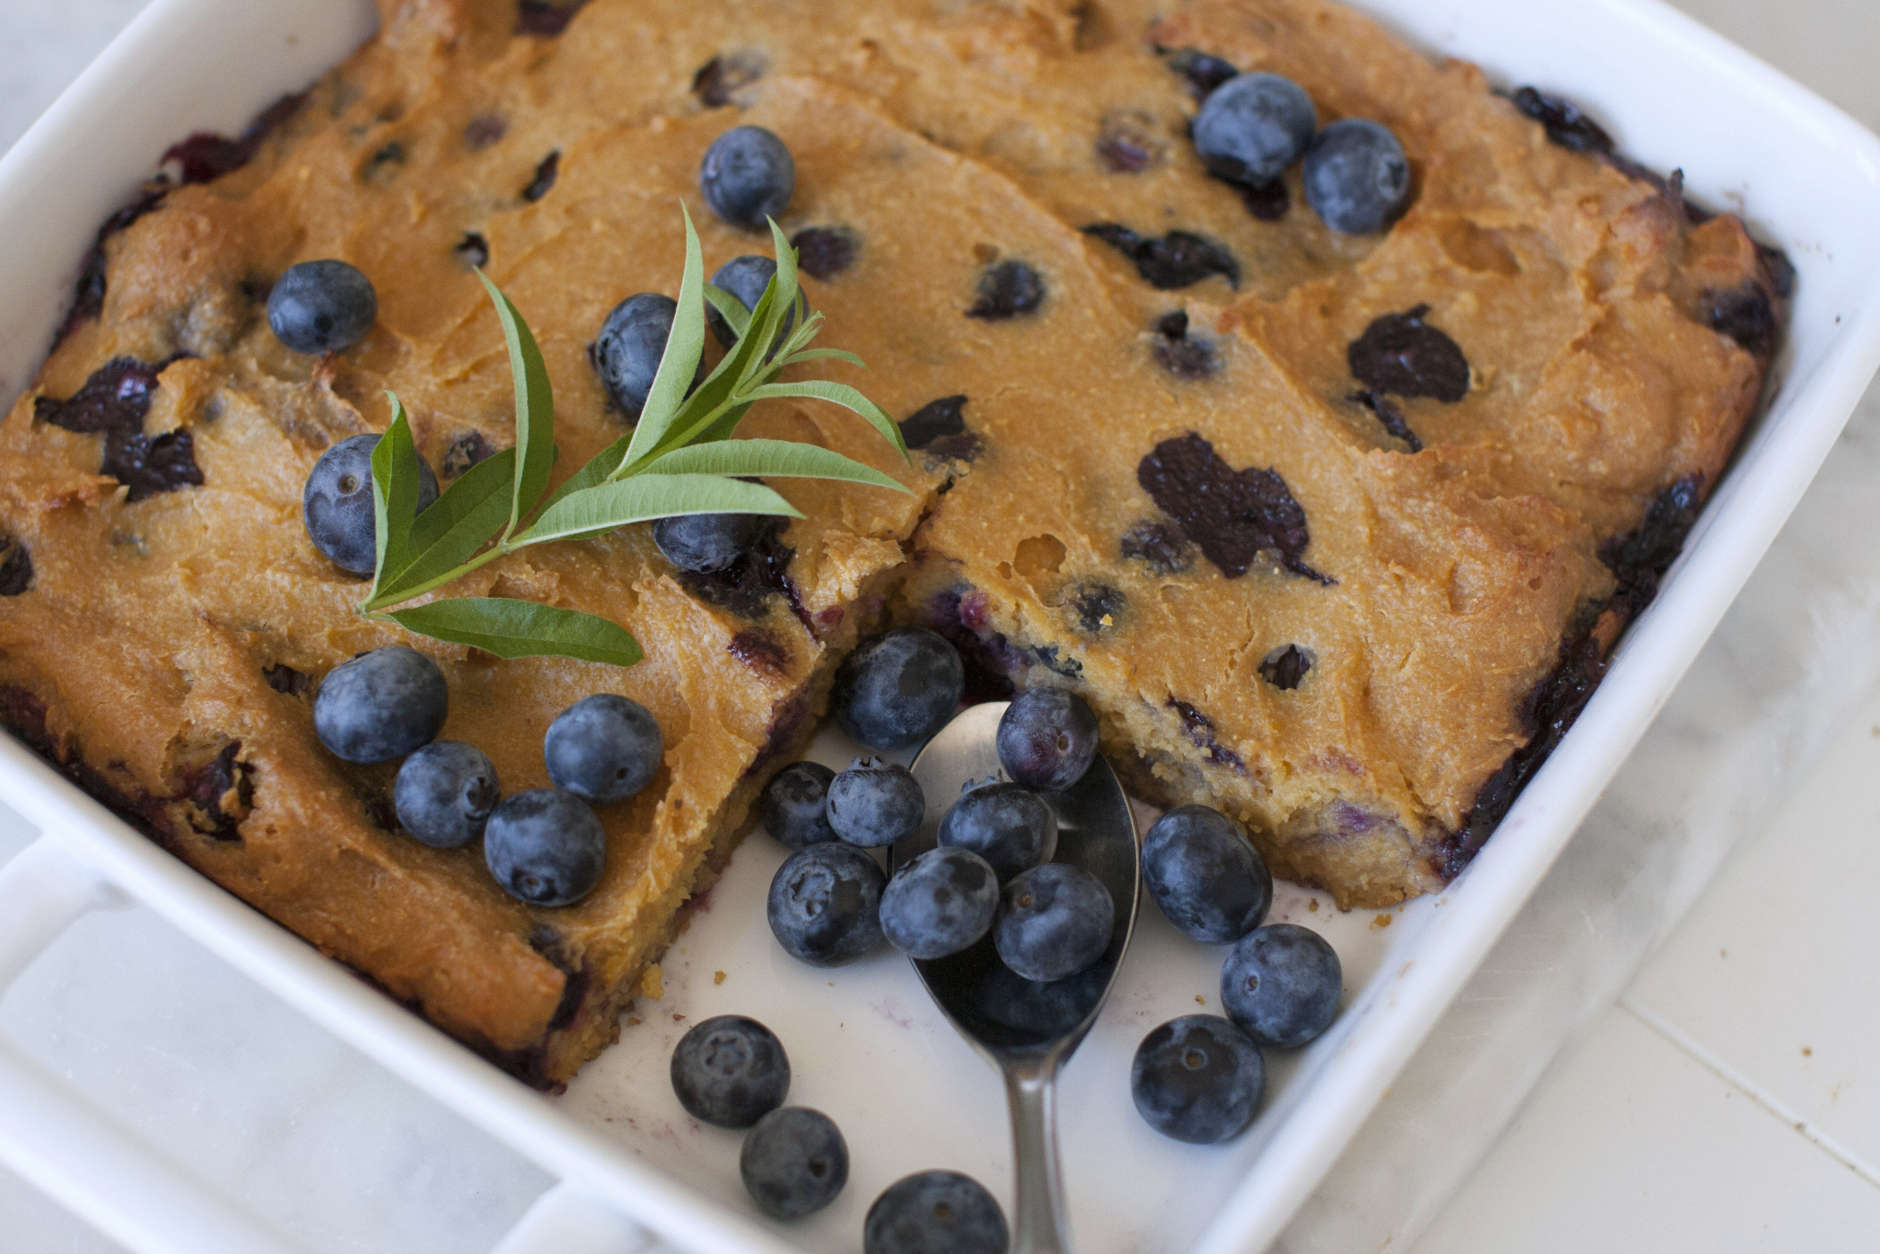 This April 21, 2014, photo shows blueberry sorghum spoon bread in Concord, N.H. (AP Photo/Matthew Mead)